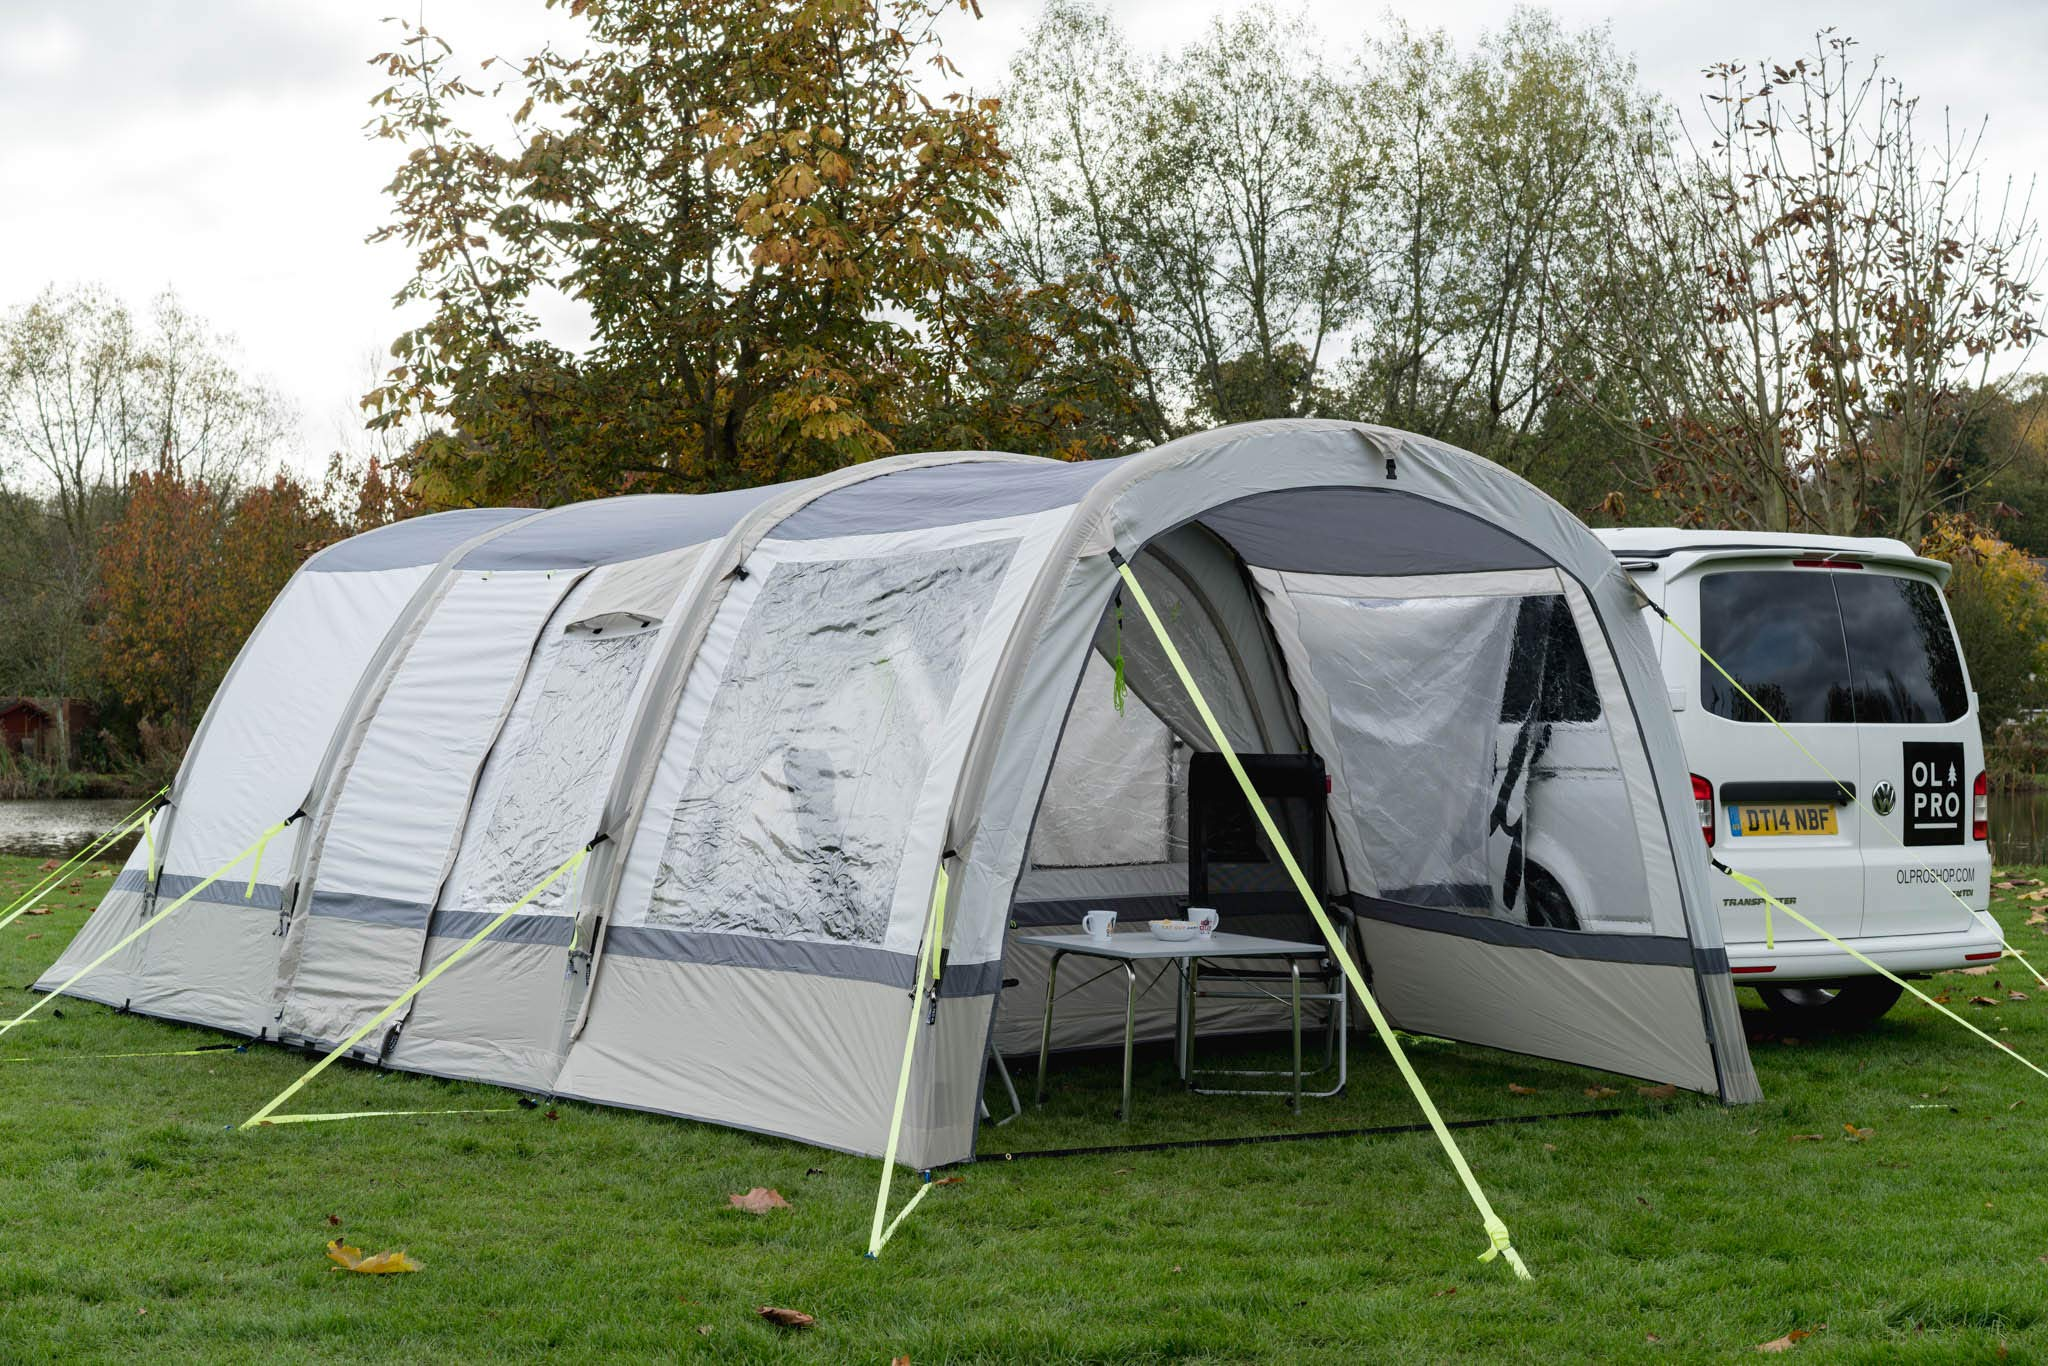 OLPRO Outdoor Leisure Products Cocoon Extension 3.5m x 1.8m Inflatable Drive Away Campervan Awning Porch Extension for Cocoon Breeze Sage Green & Chalk 2